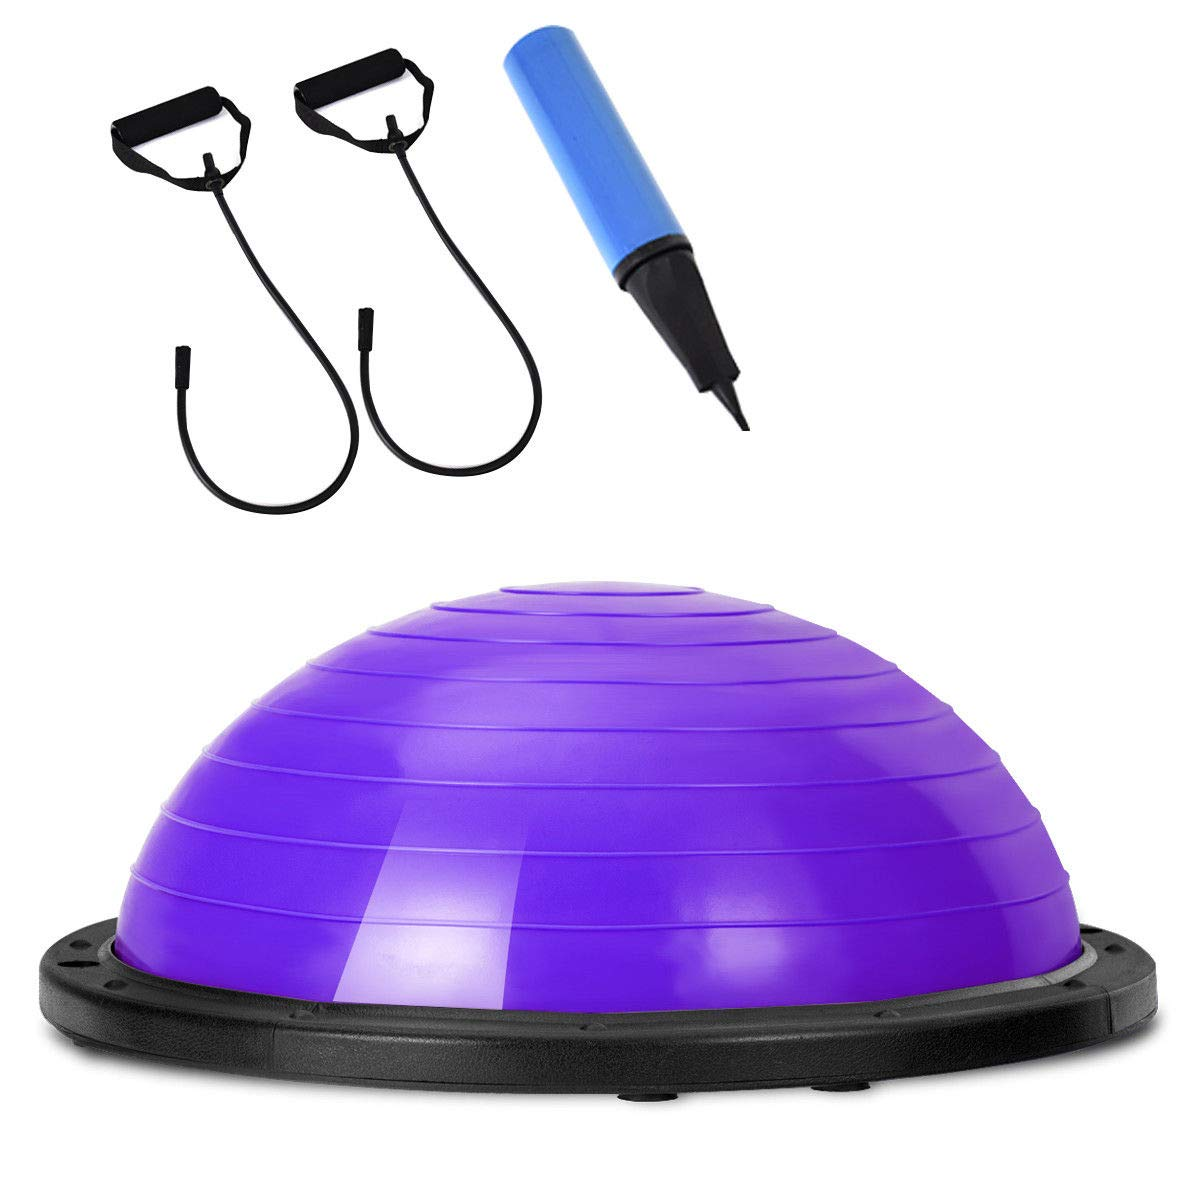 Giantex 23'' Yoga Ball with Pump Balance Fitness Trainer Home Exercise Training Balance Boards (Purple)